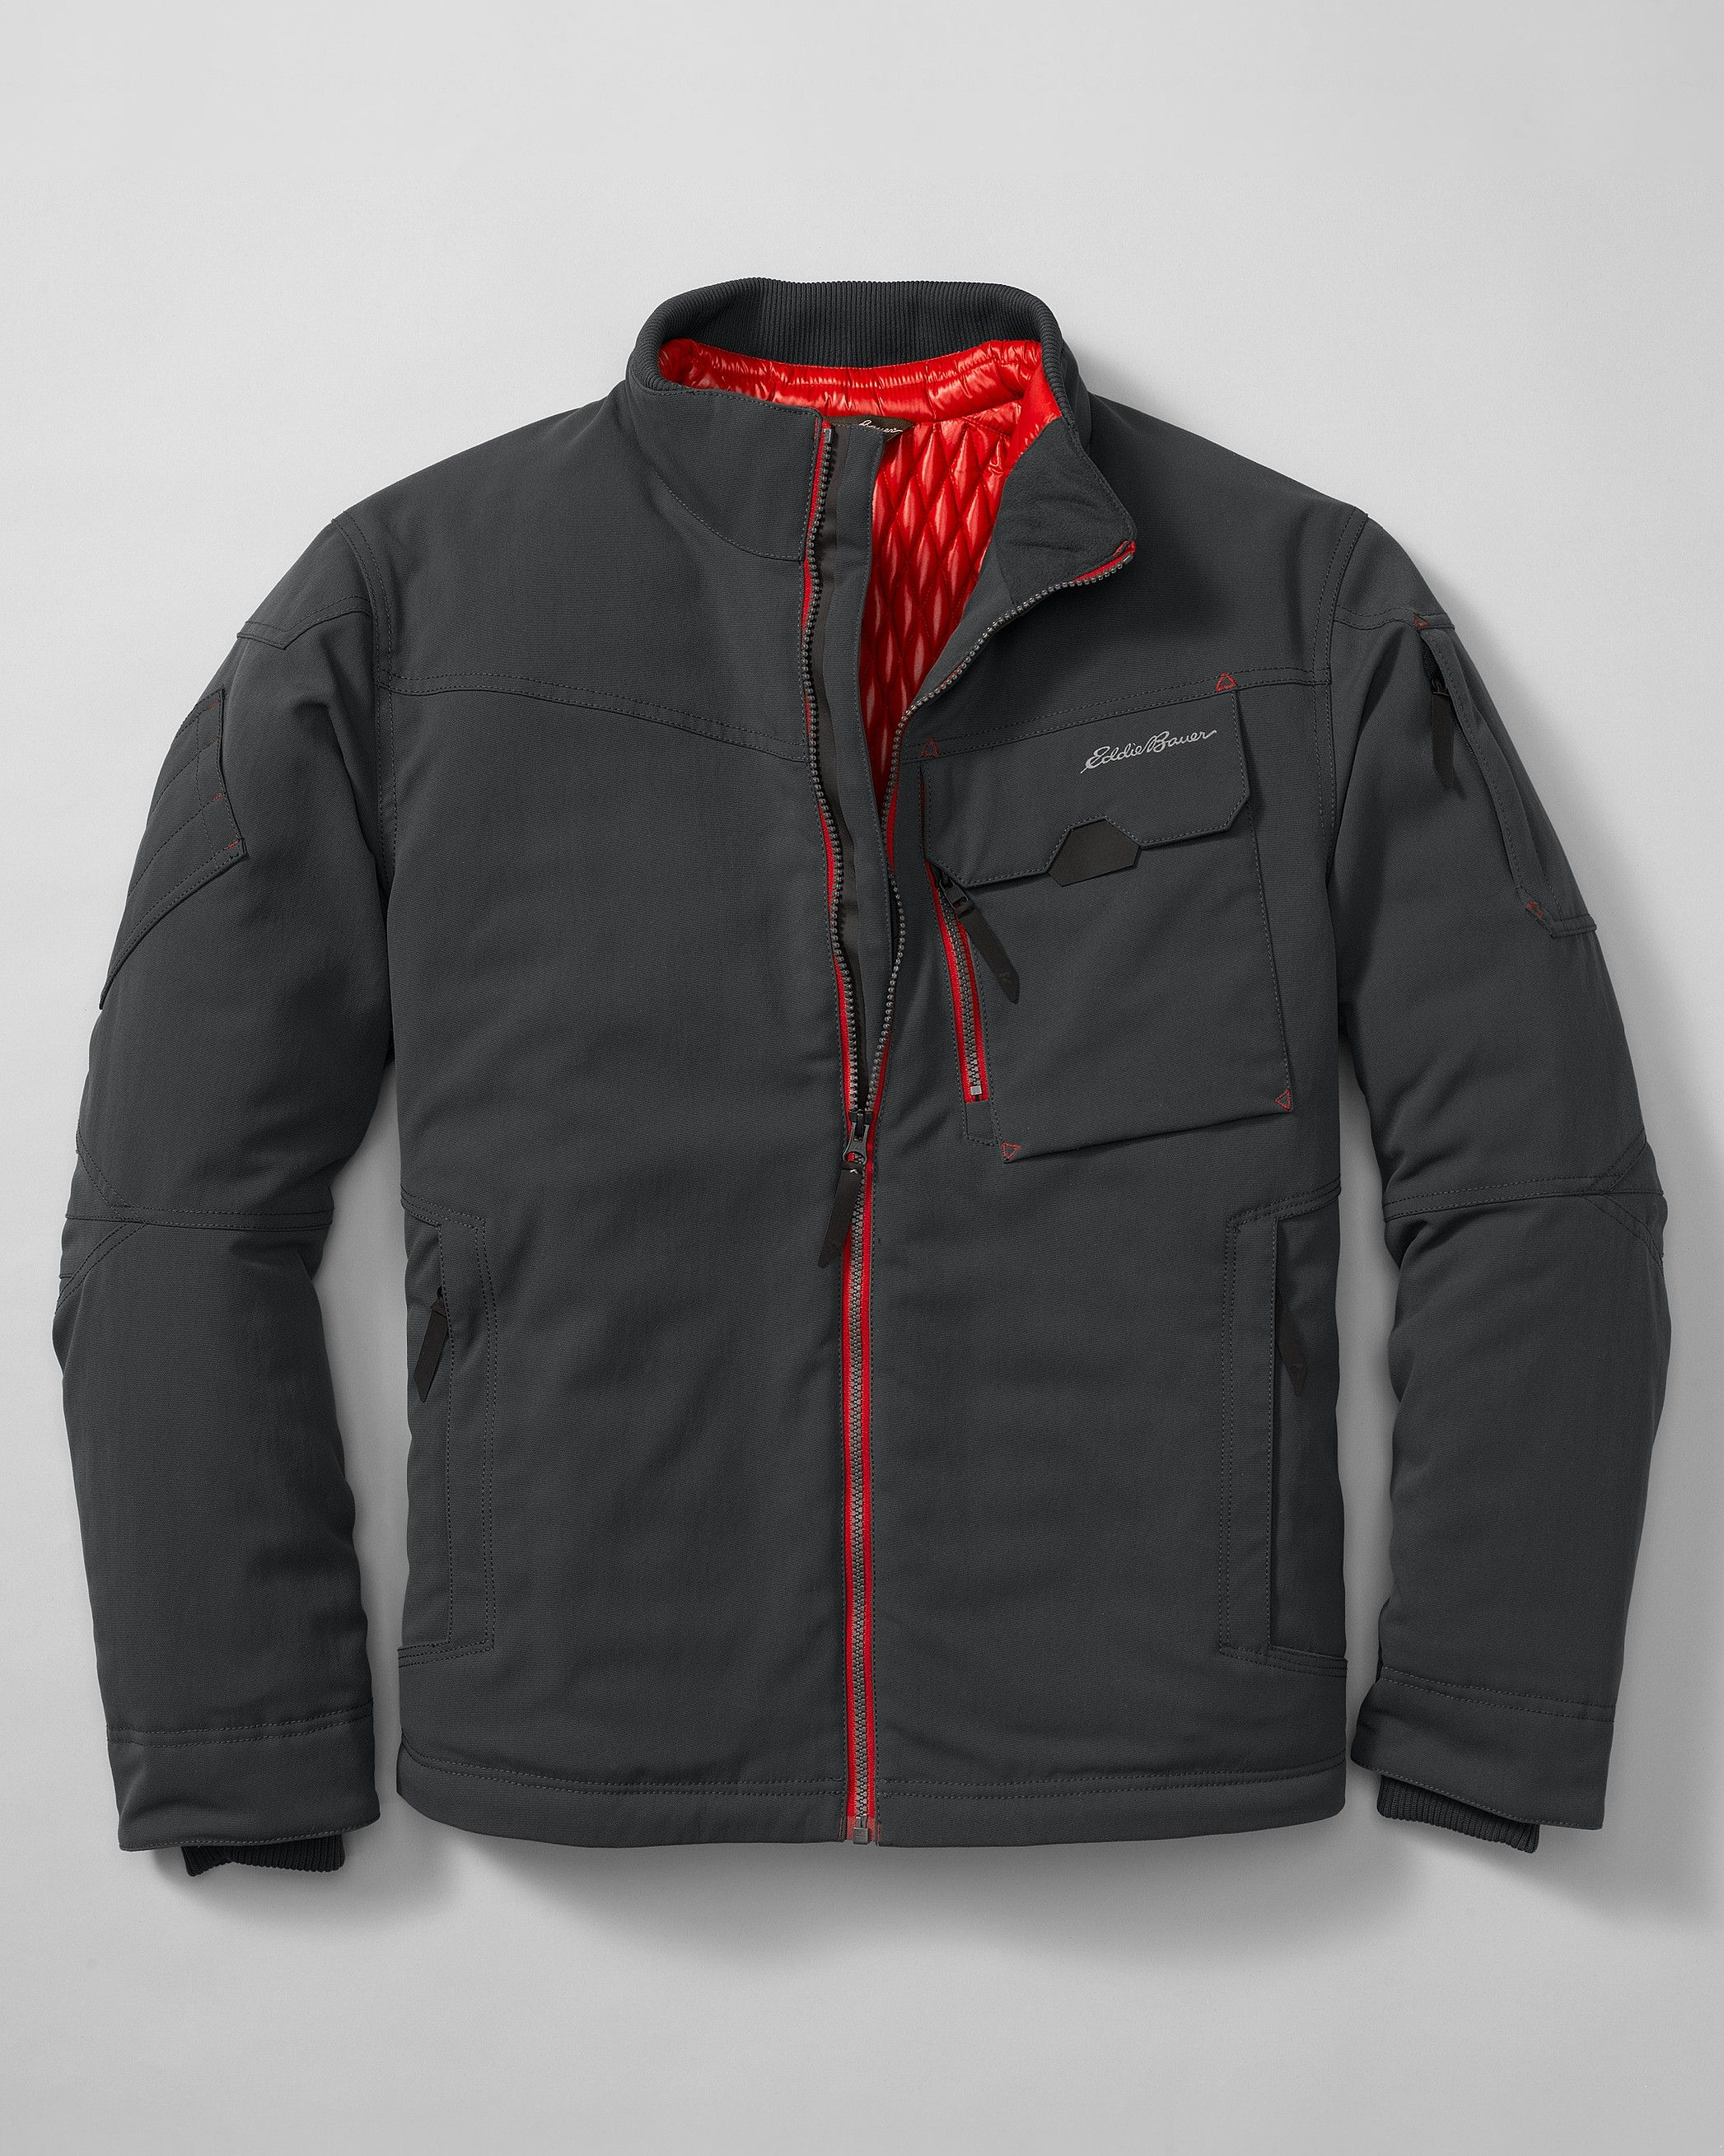 online store 8249c f325d Mountain Ops Jacket | First Ascent - MUST. HAVE. THIS ...